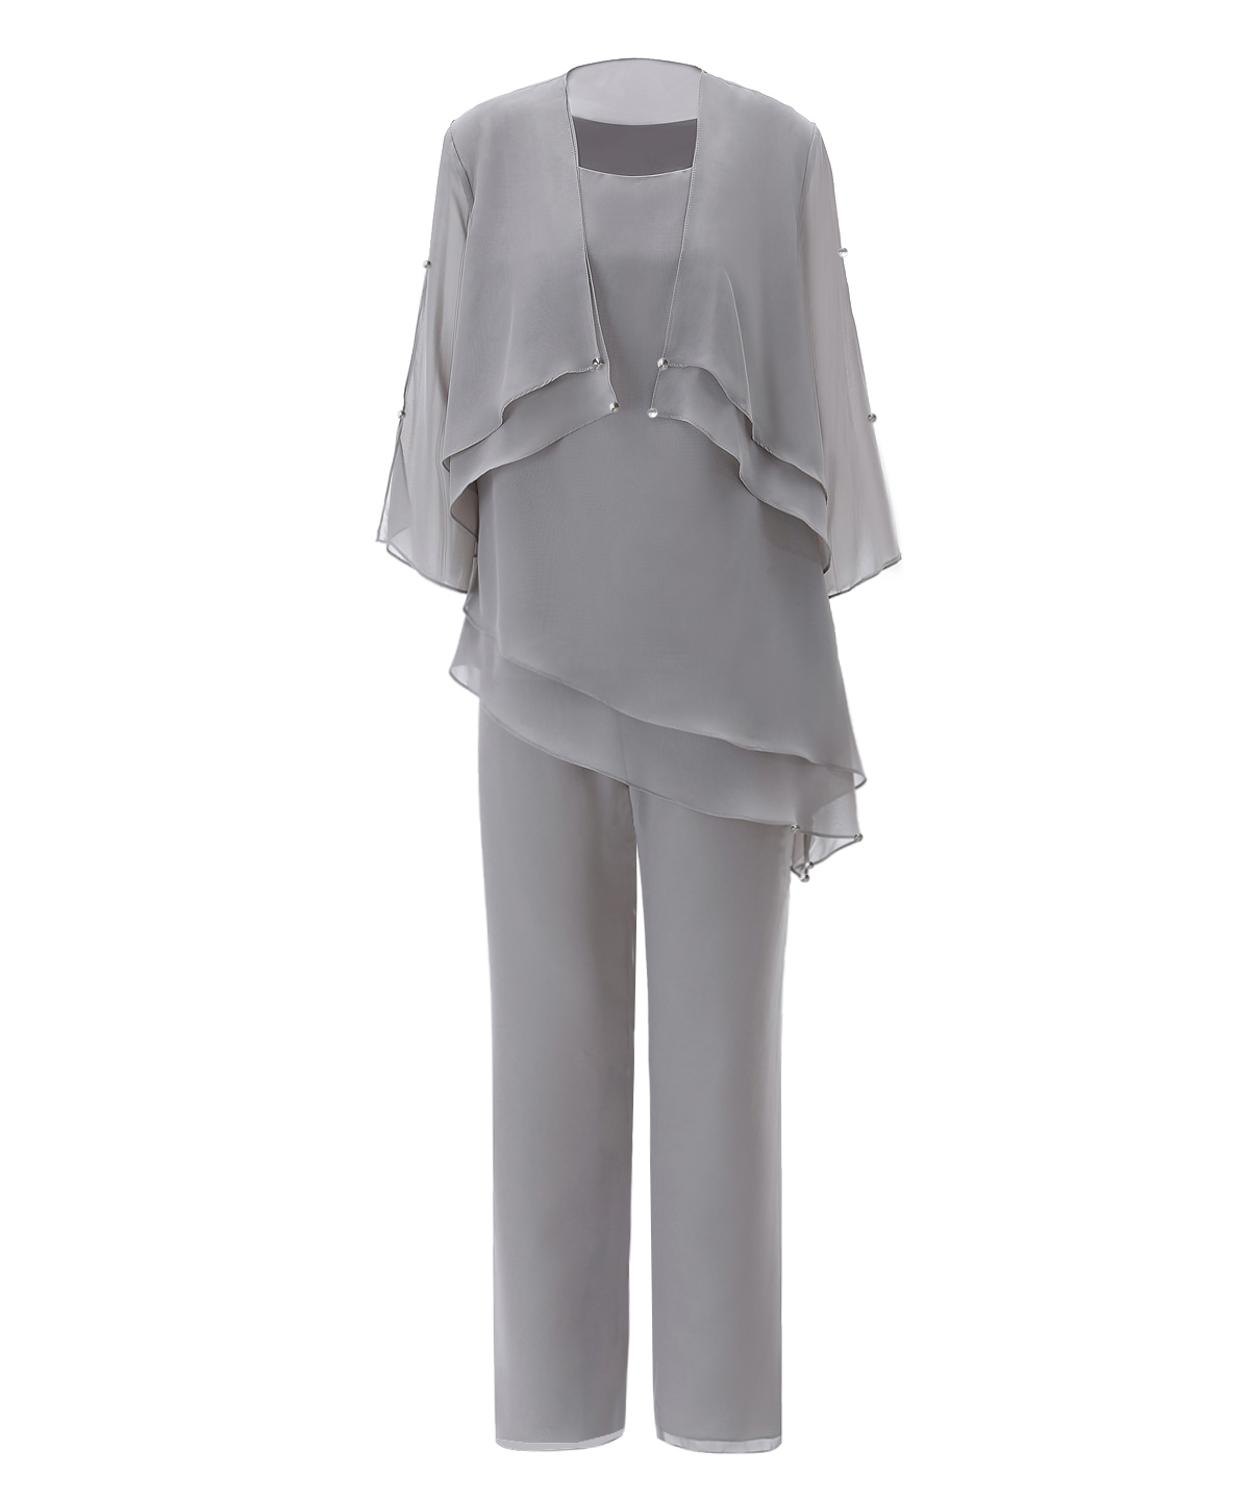 SOLOVEDRESS Grey Mother Of The Bride Dress Pantsuits Womens Asymmetrical Chiffon Lining Suit With Short Outfit Jacket 3 Pieces